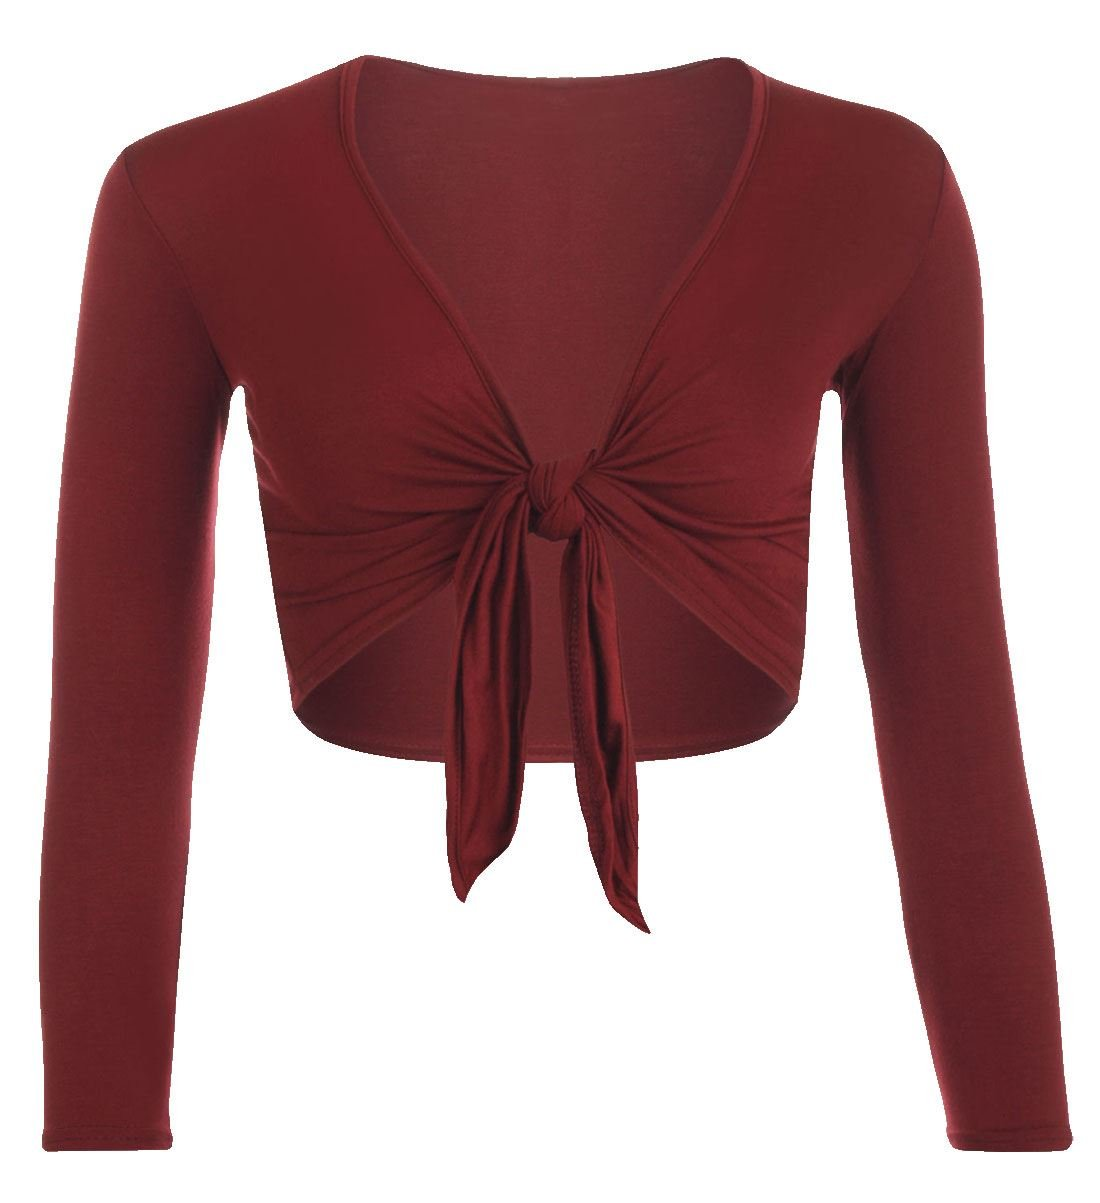 NEW LADIES LONG SLEEVE TIE UP FRONT CROPPED SHRUG BOLERO CARDIGAN TOP 8-22 FASHION FAIRIES LTD